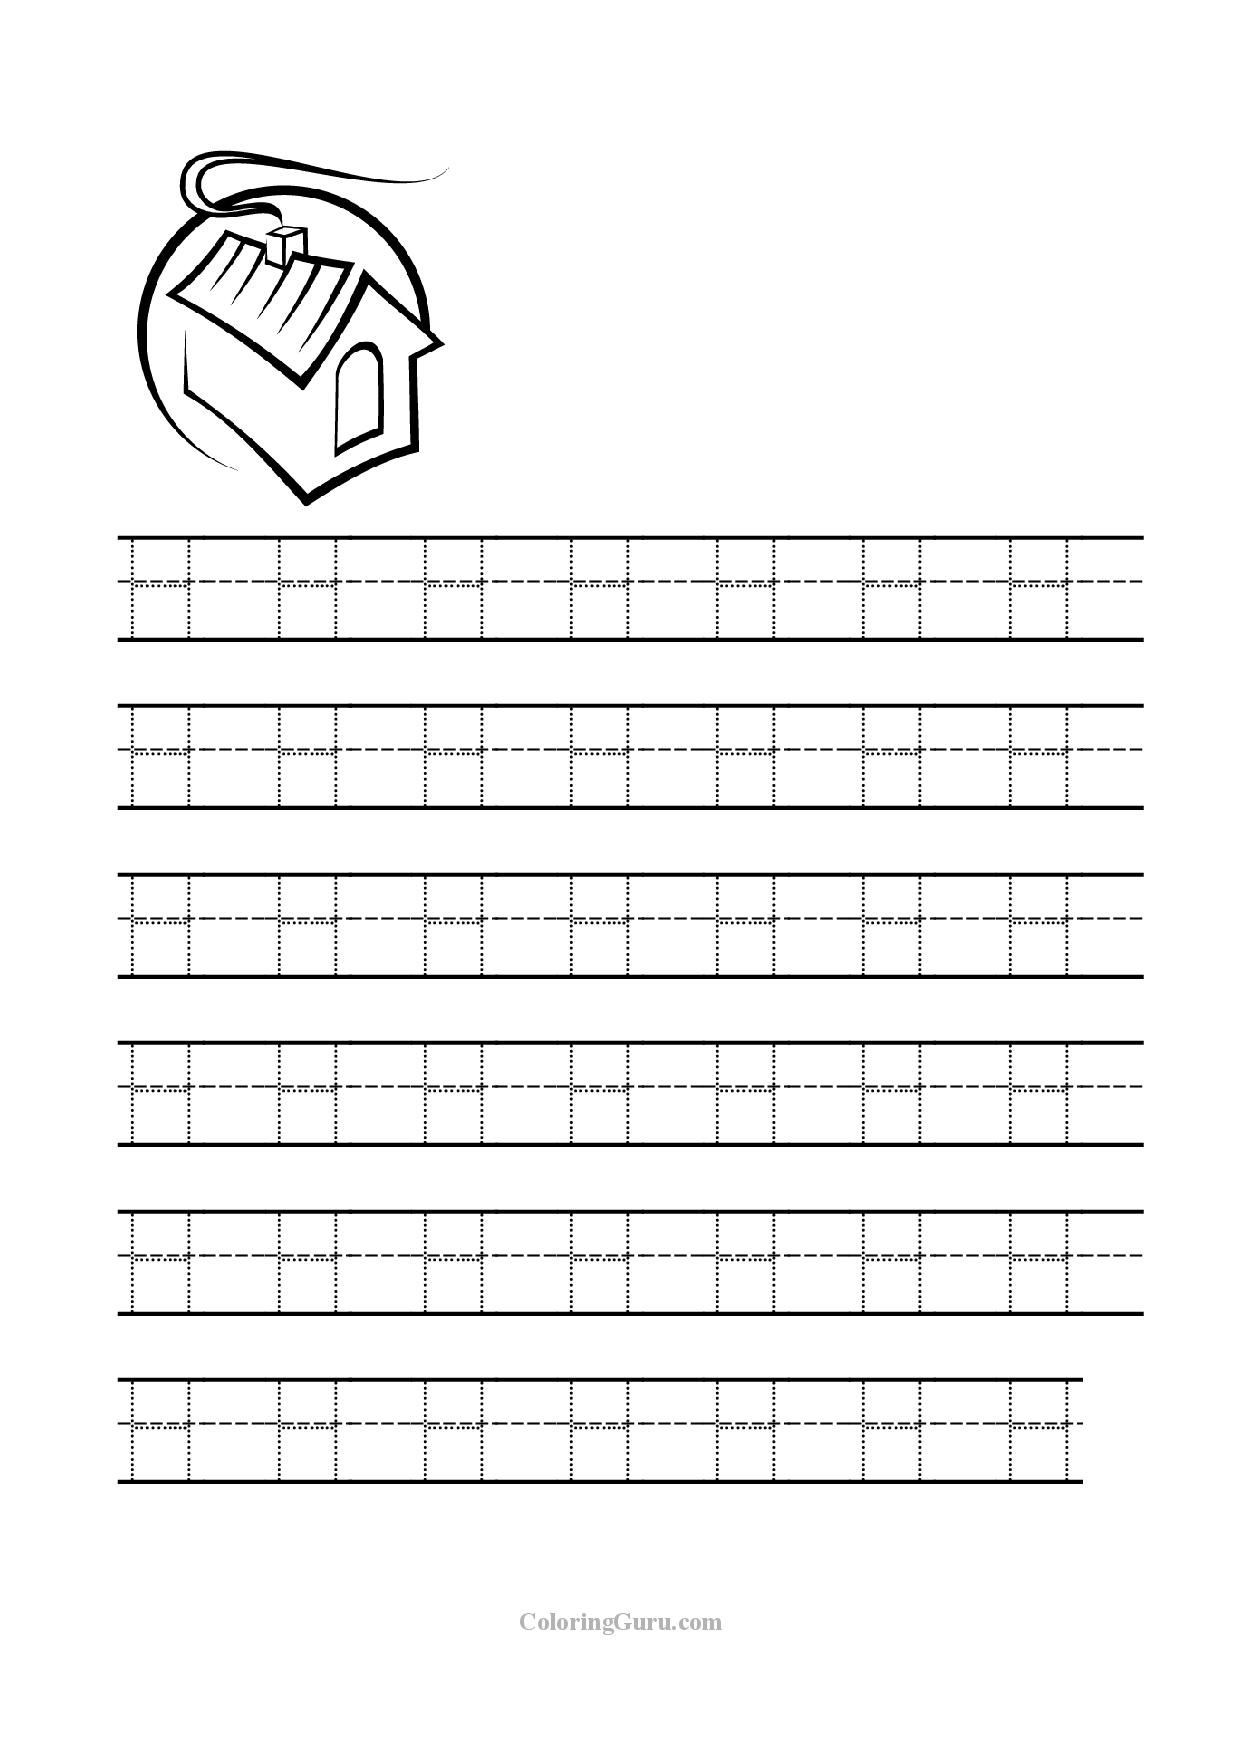 Letter H Worksheets for Preschoolers Free Printable Tracing Letter H Worksheets for Preschool